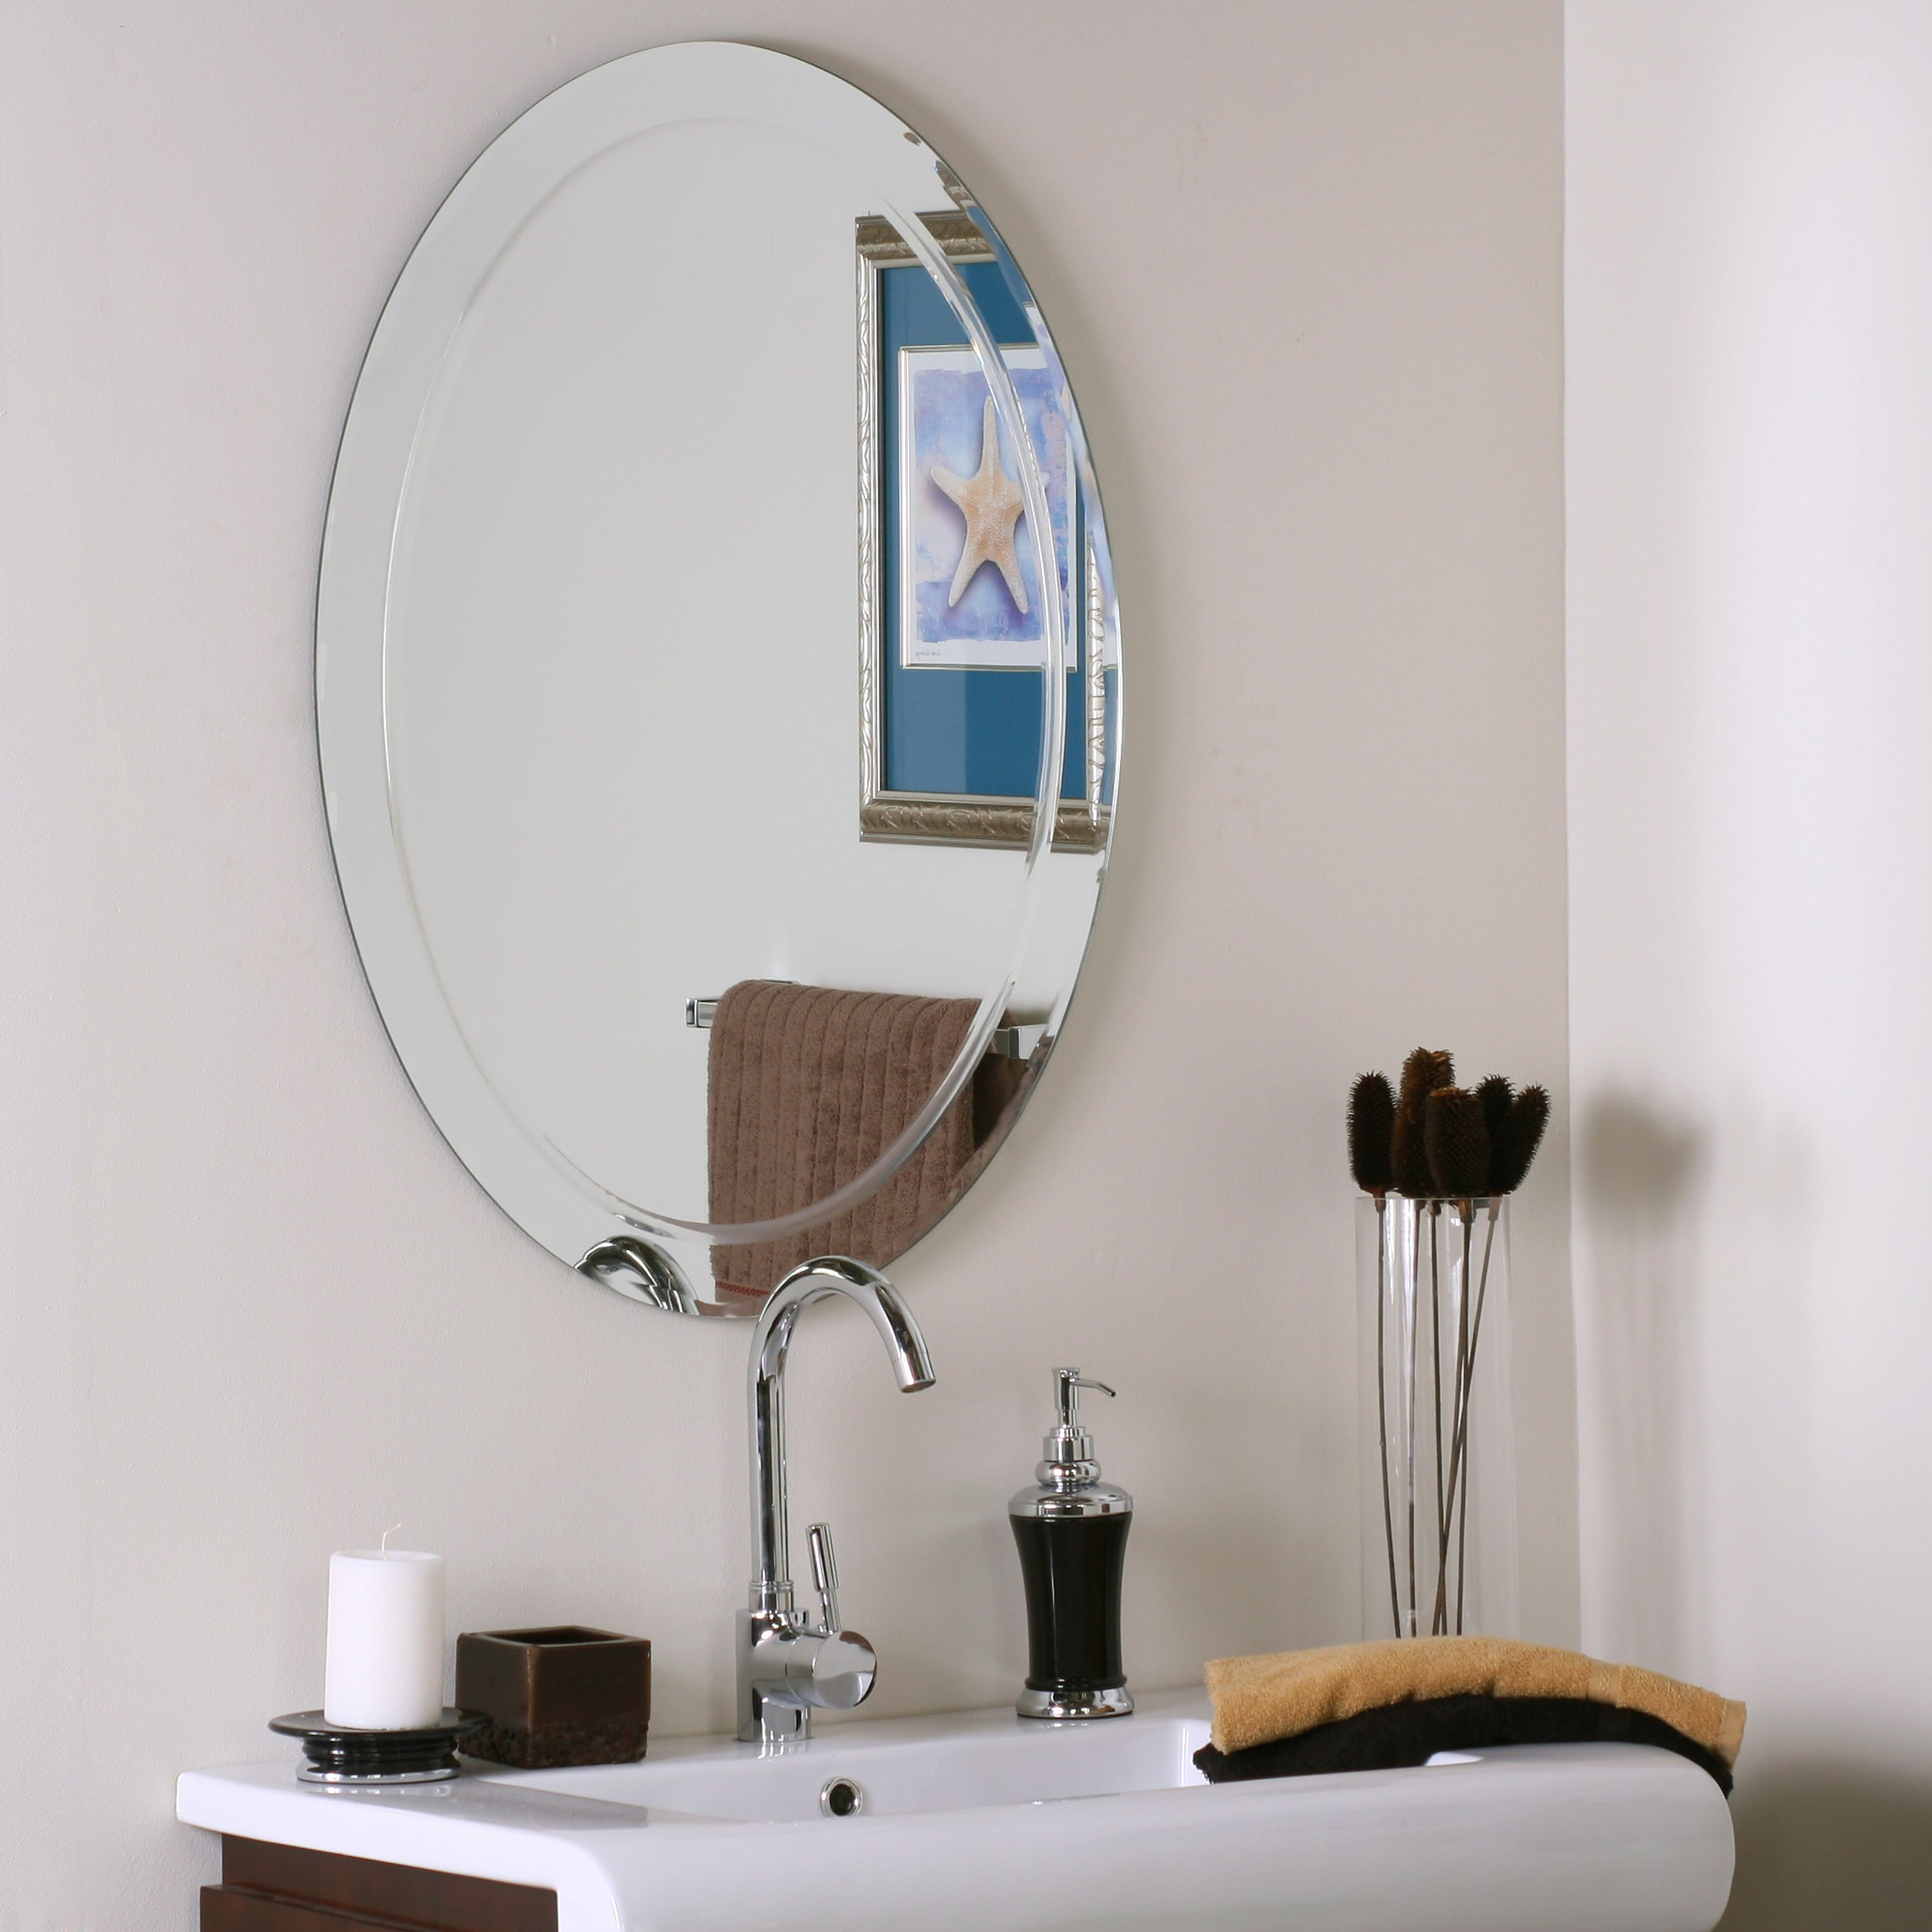 Alden modern bathroom mirror 14106598 - Modern vanity mirrors for bathroom ...